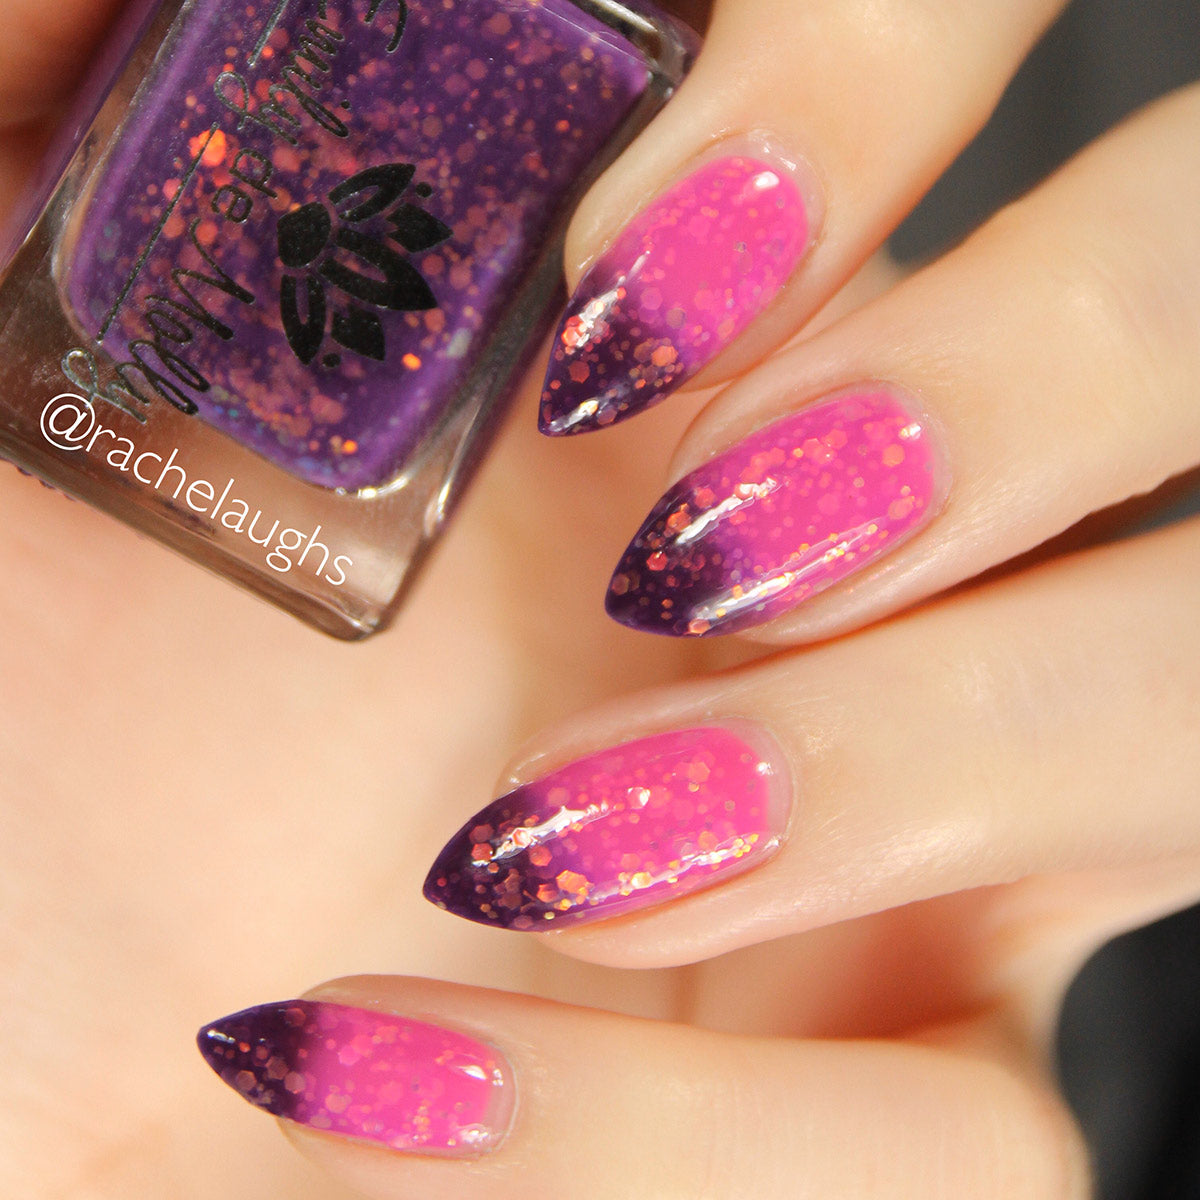 Emily de Molly - Ombres And Glitter (Thermal)